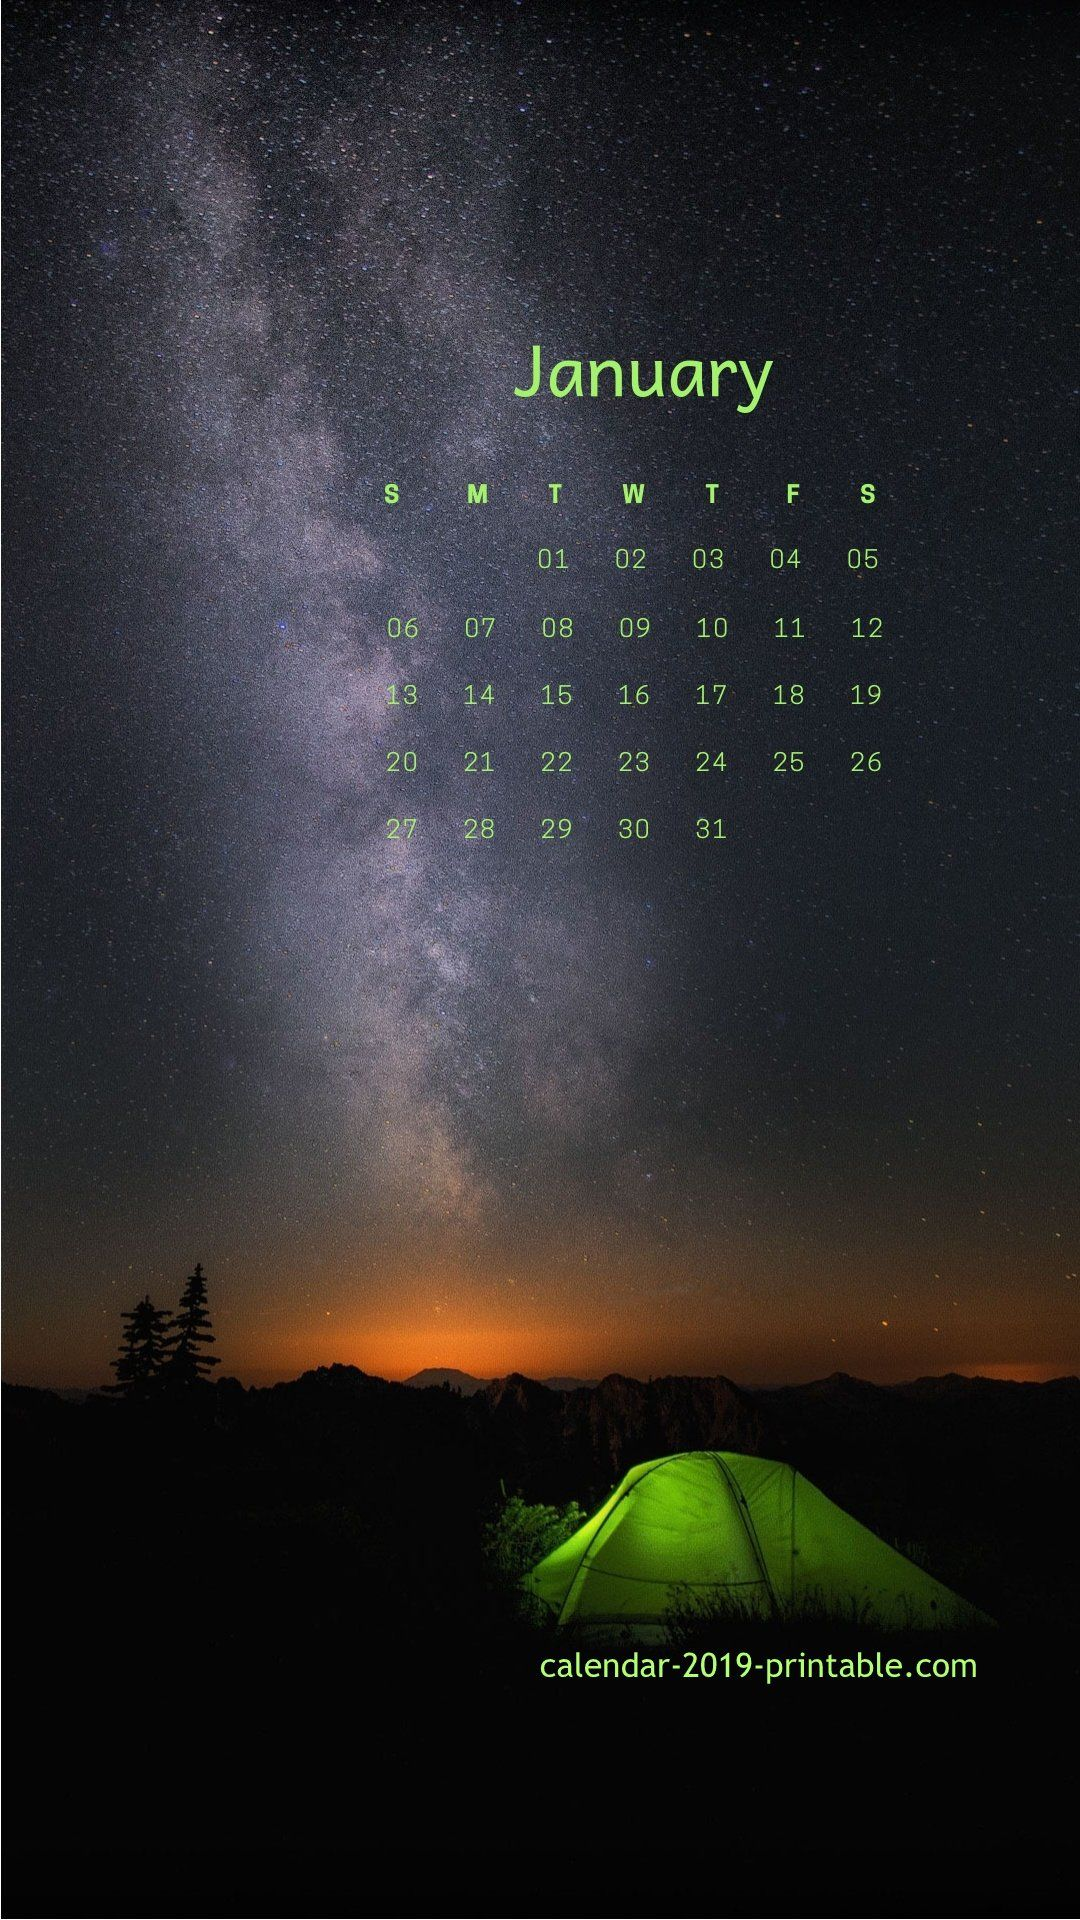 January 2019 iPhone, Android Calendar Wallpapers